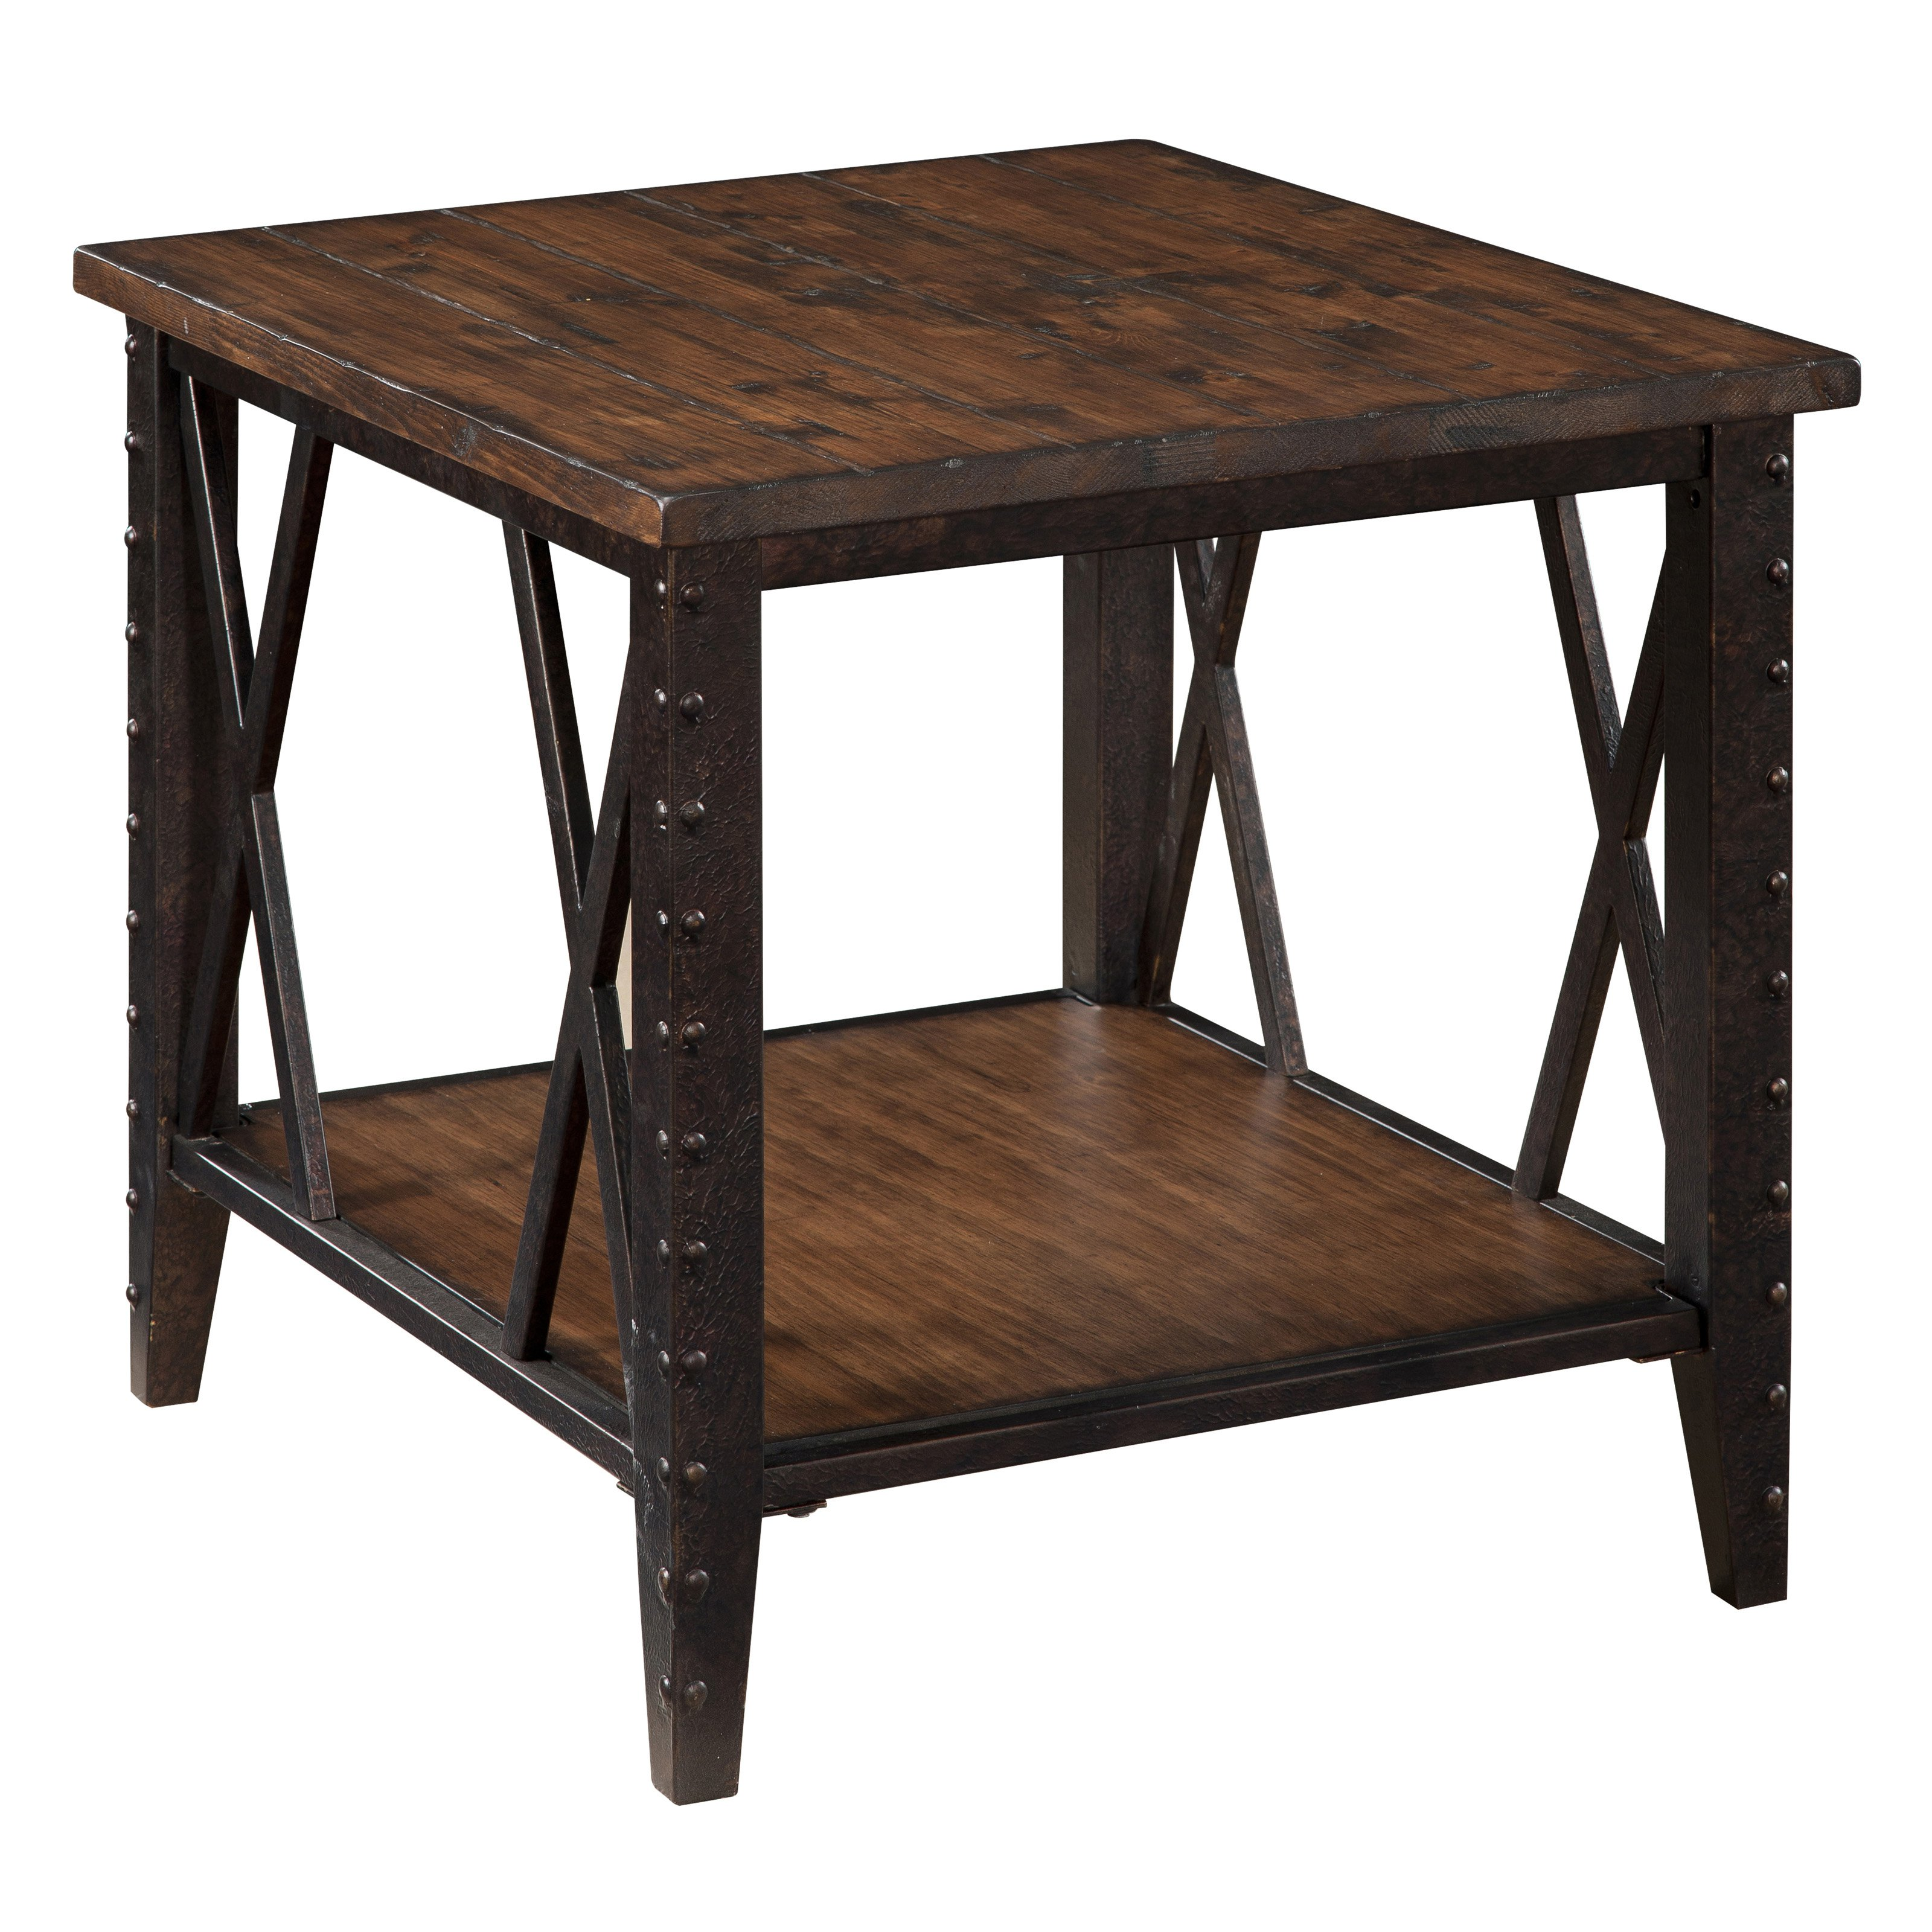 magnussen fleming rectangle rustic pine wood and metal end table master antique tables aqua runner small drinks fridge round coffee base tall ethan allen next side gold marble red